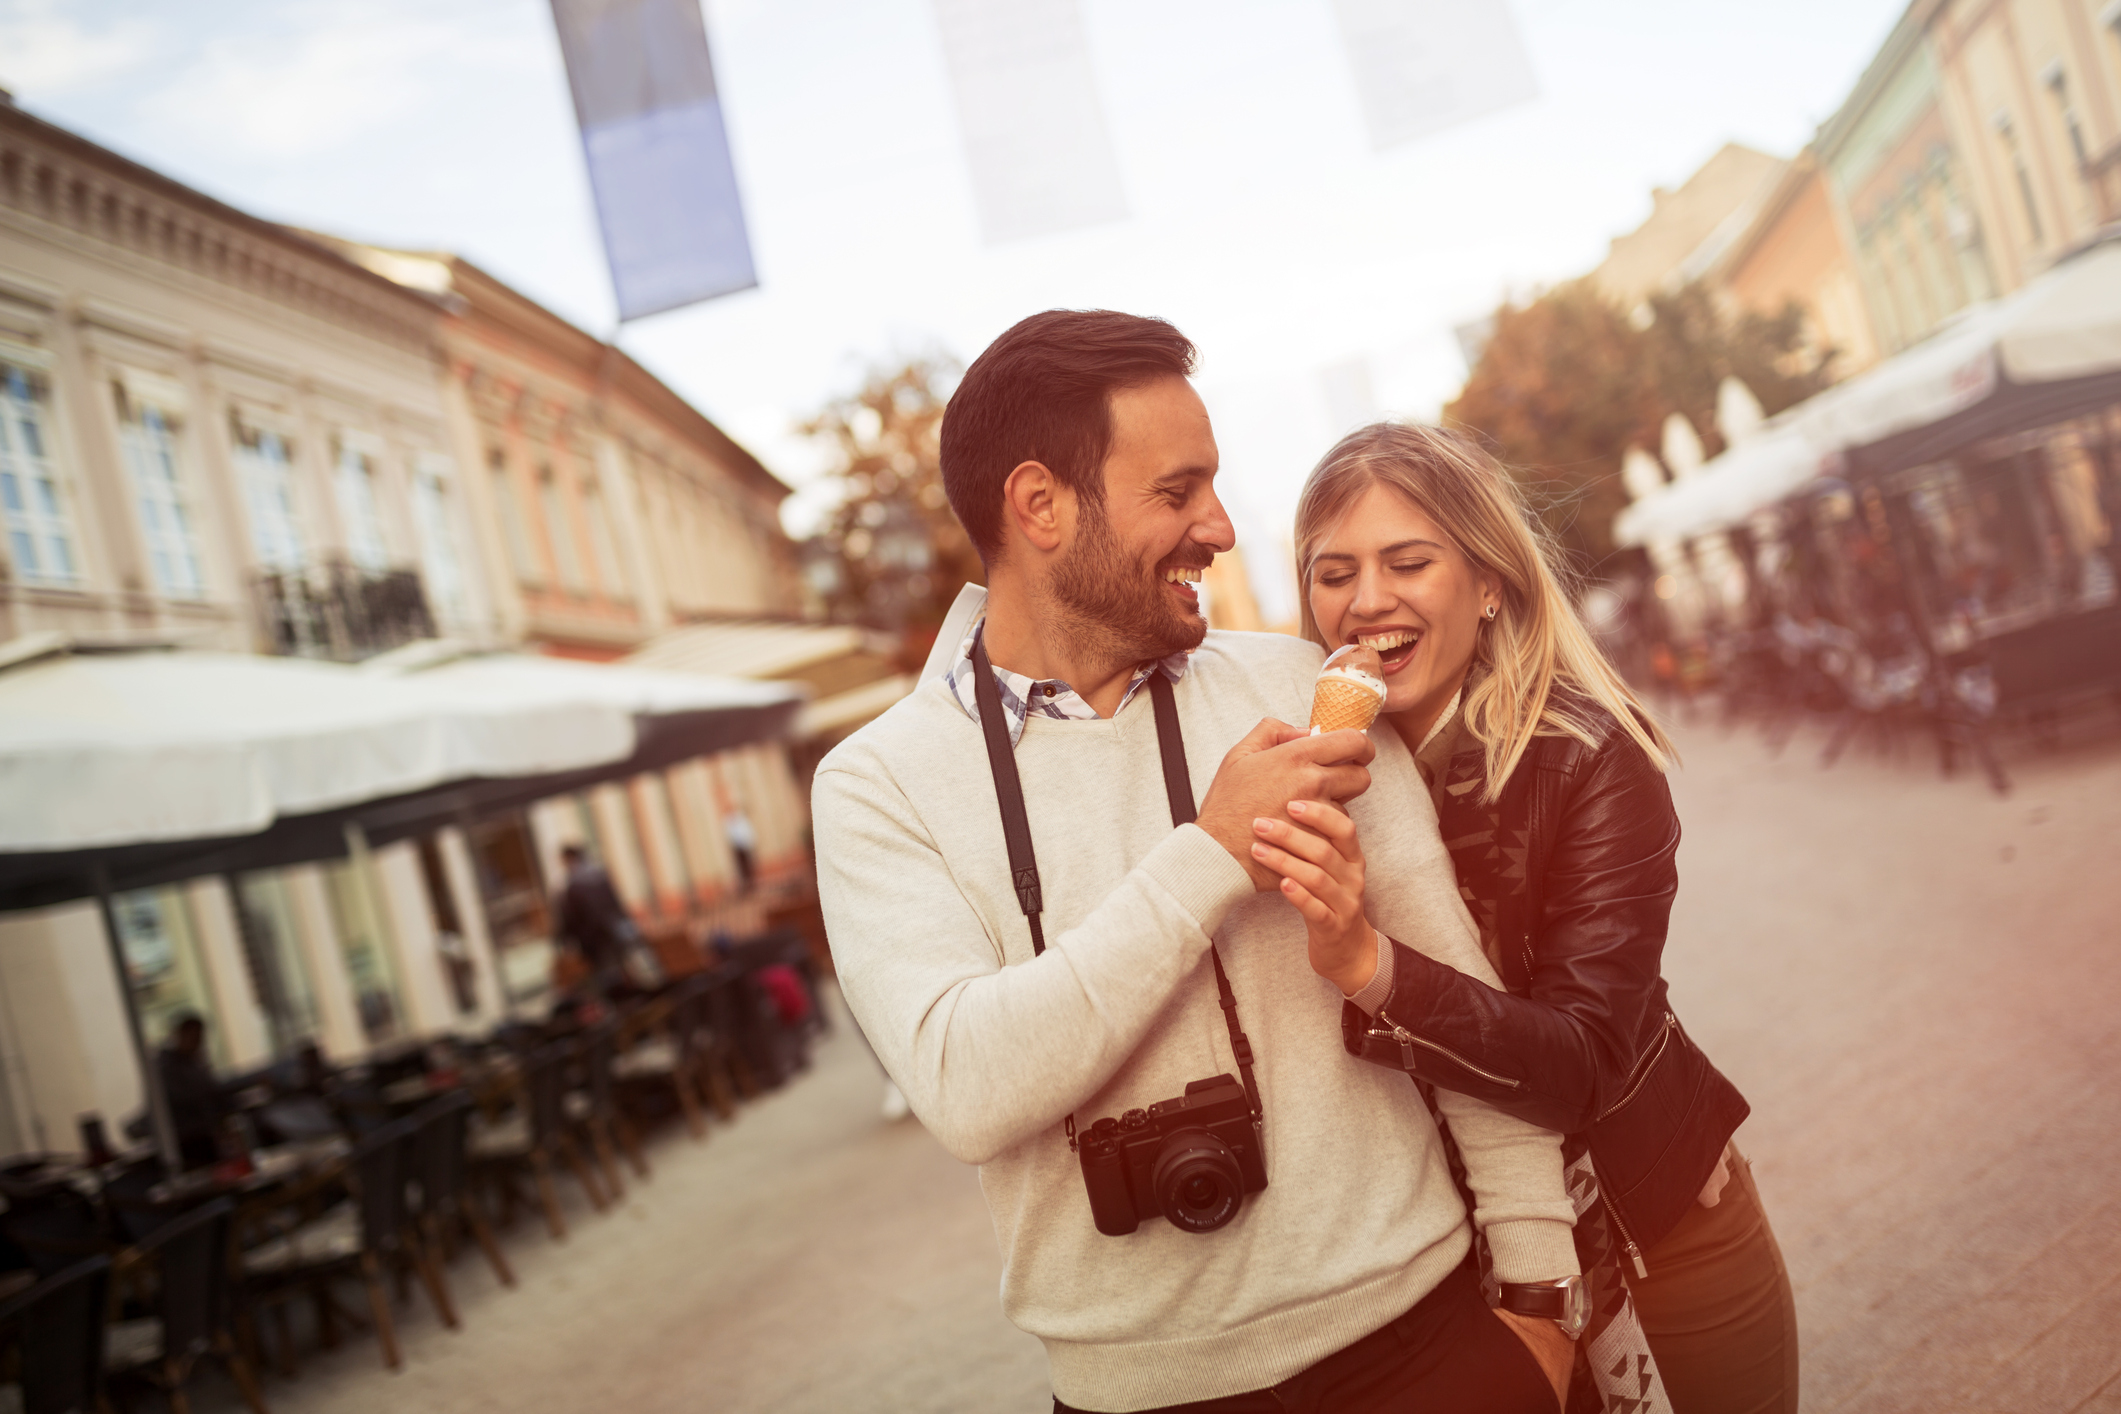 Tourist couple sharing ice cream outdoors and smiling